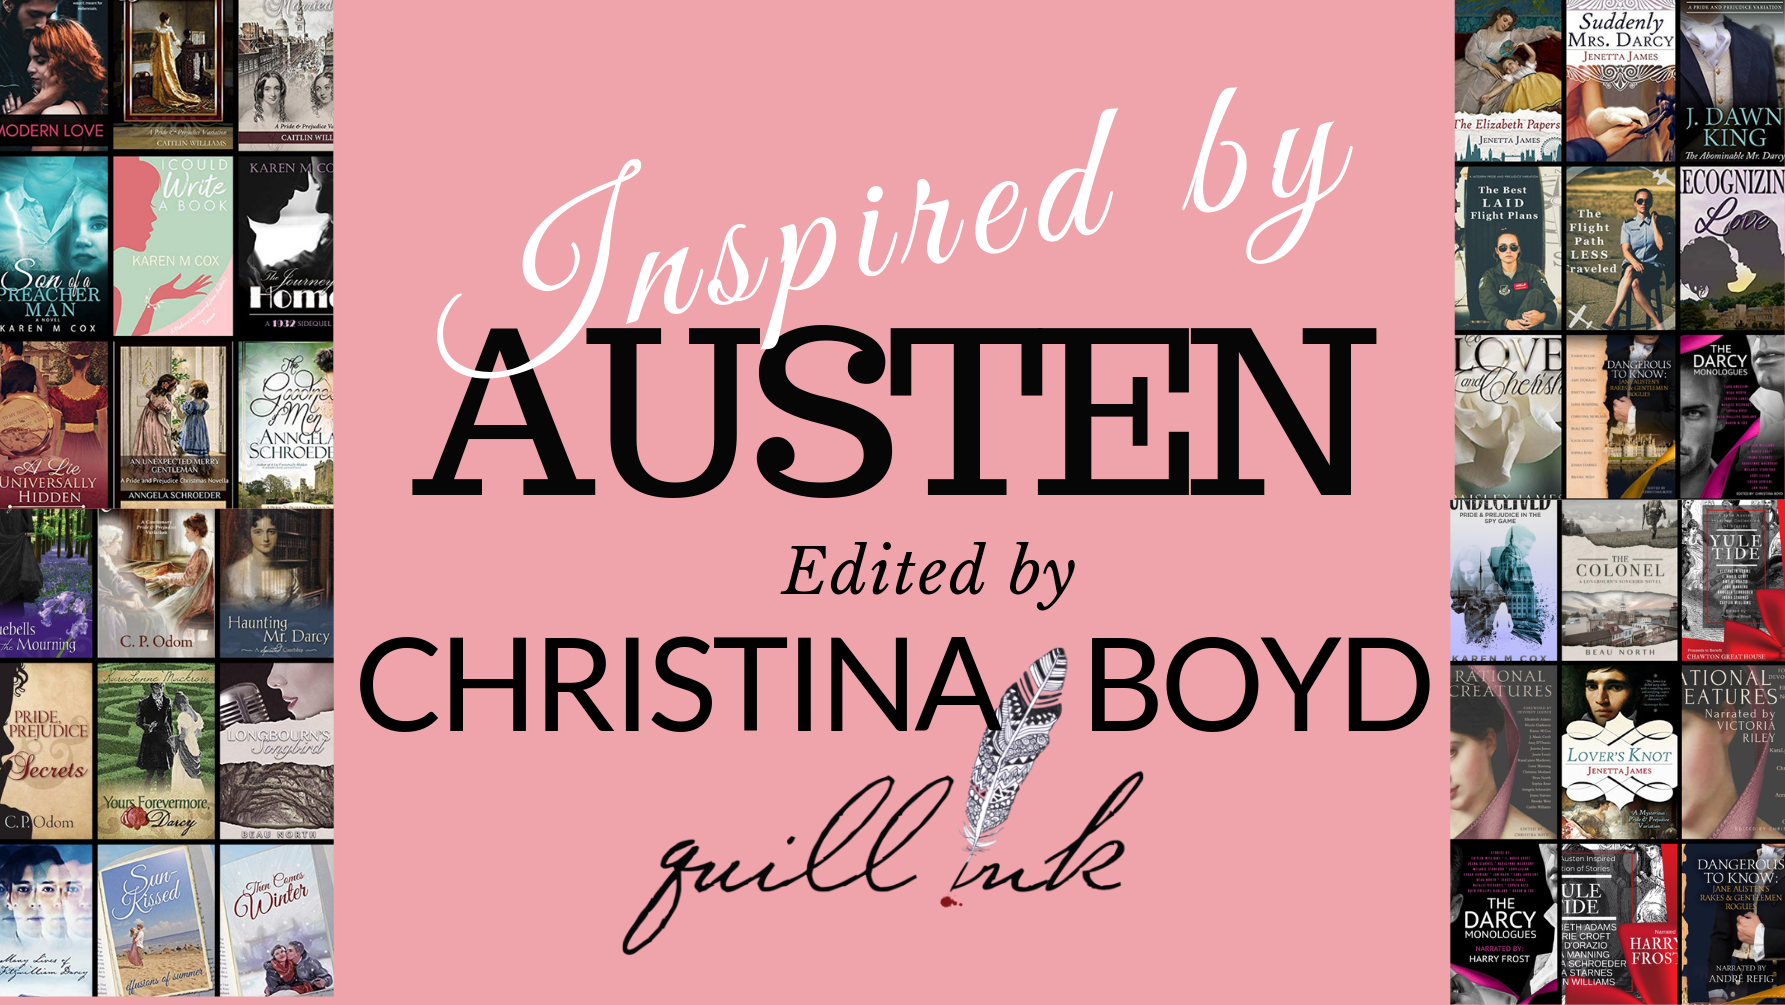 BOOKS BY THE QUILL INK | Jane Austen fanfiction | Quillink